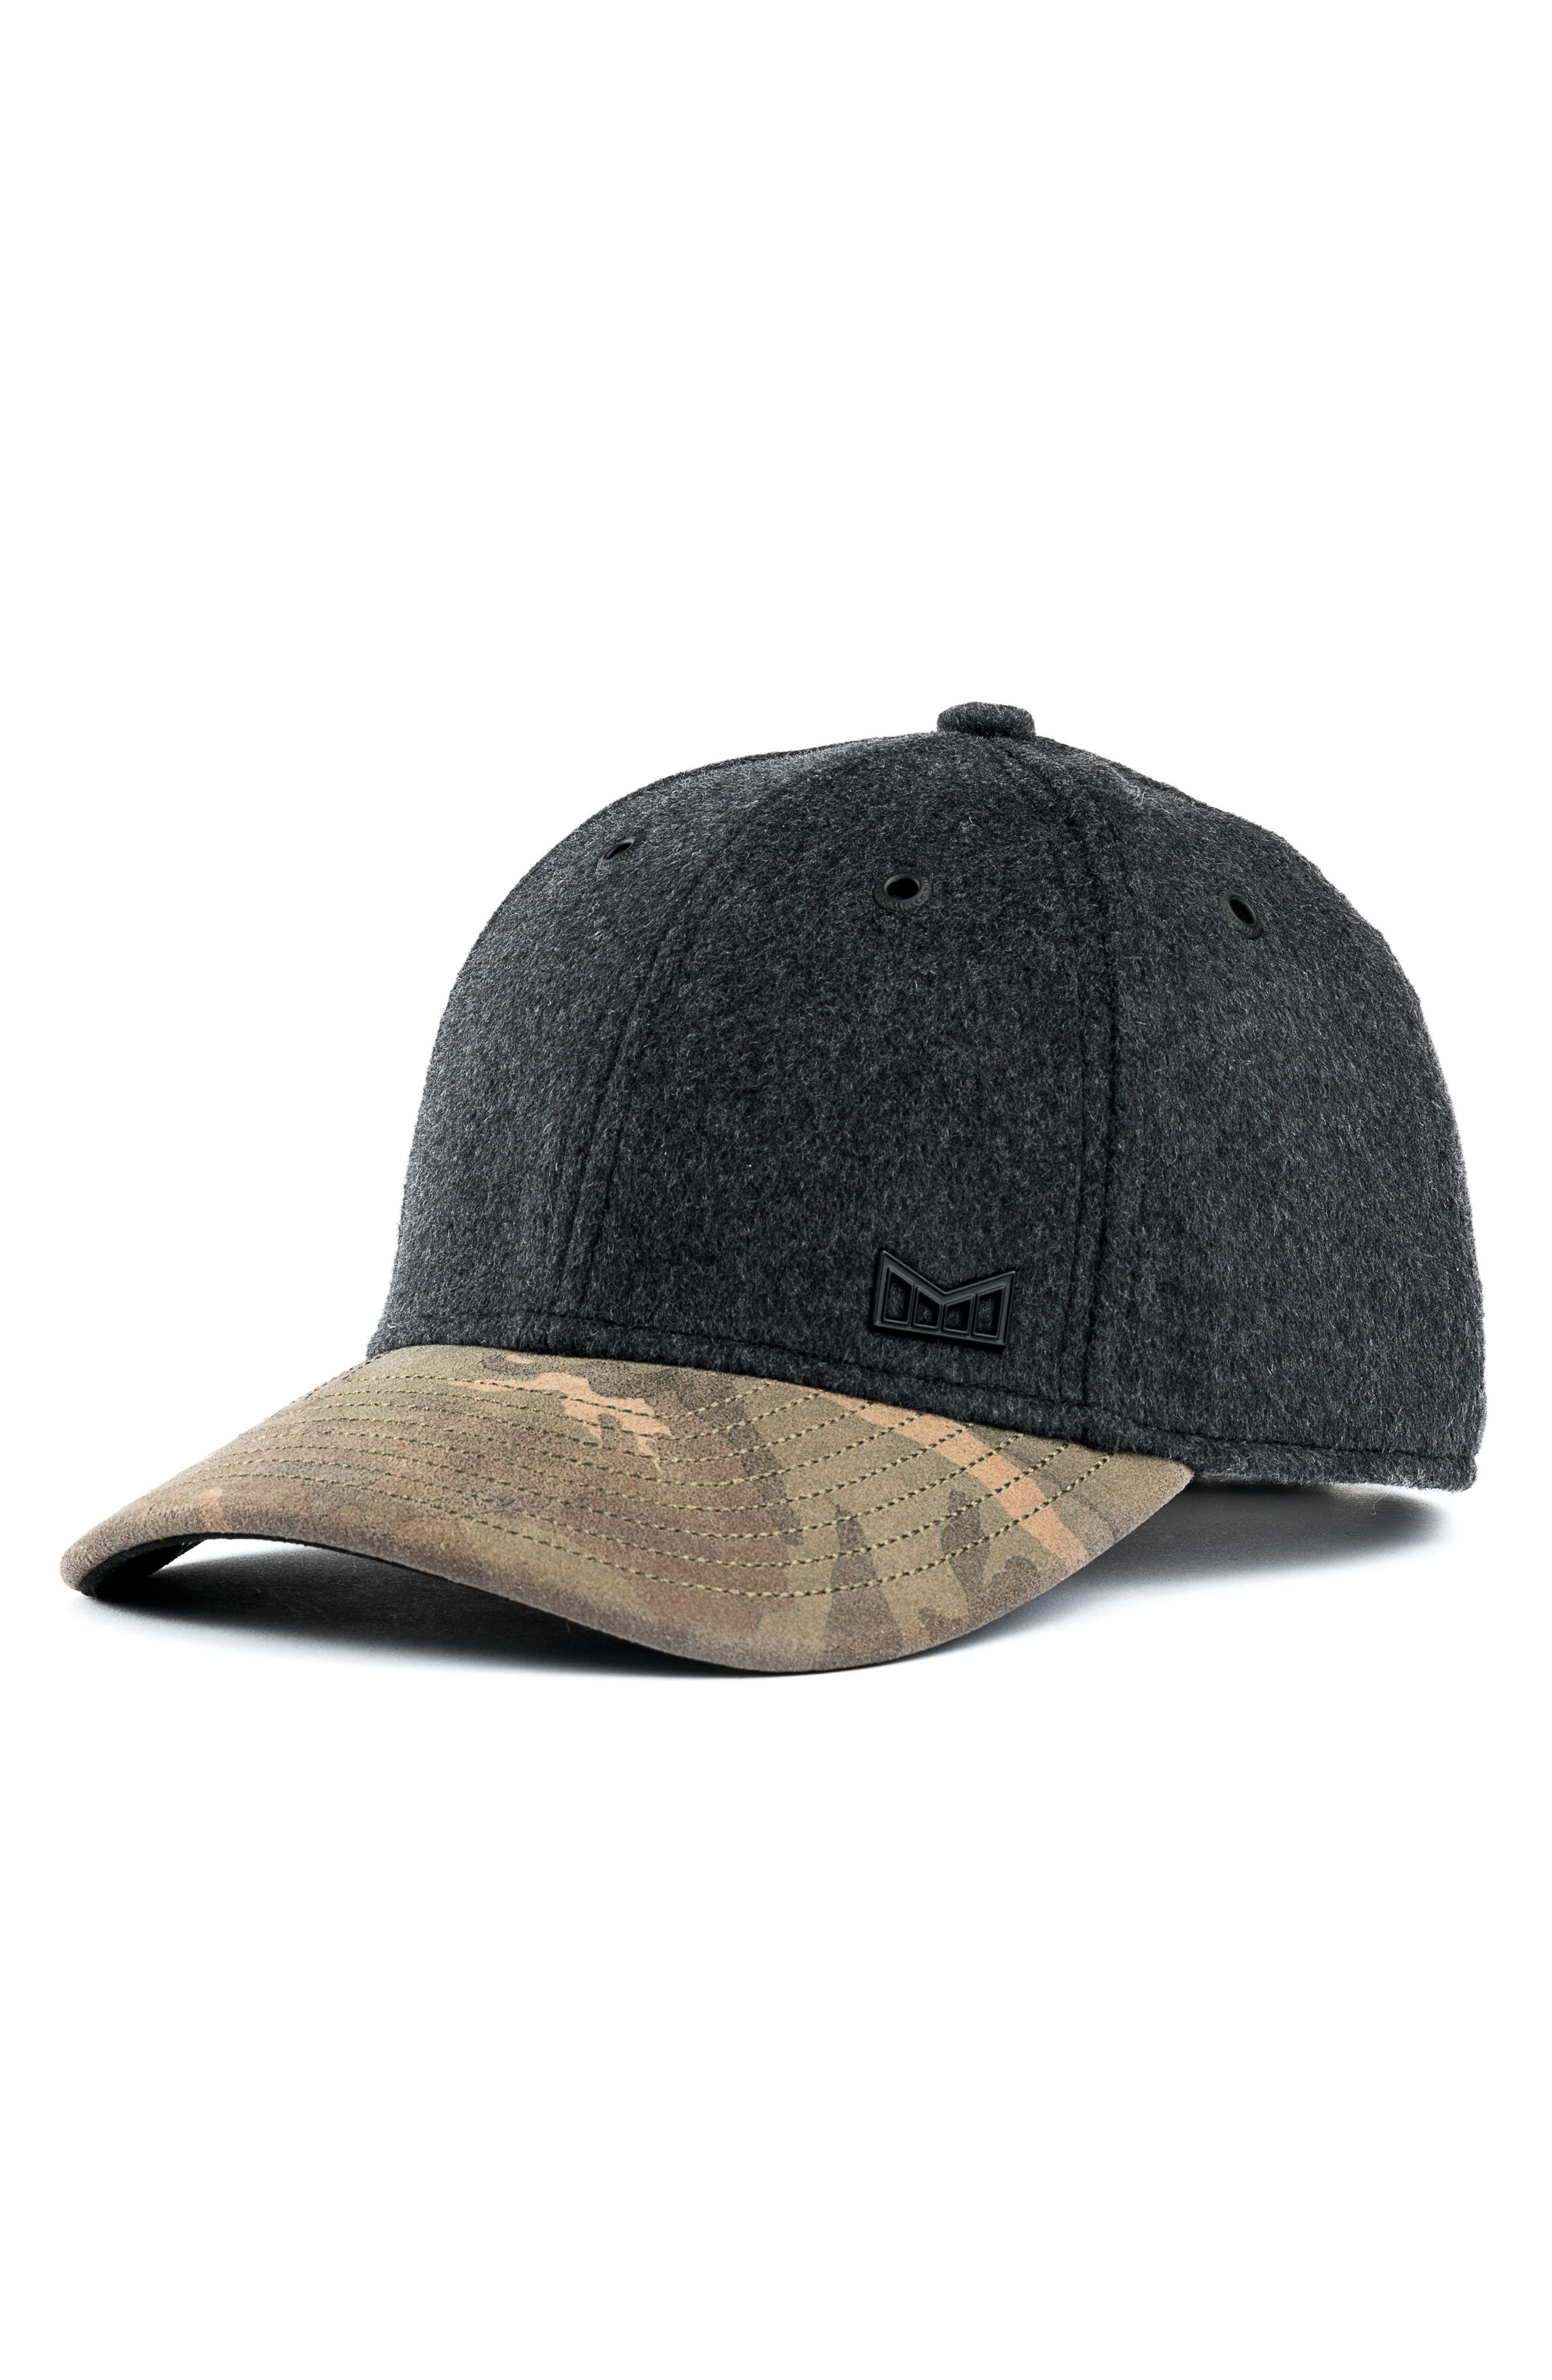 Melin Maverick Ball Cap